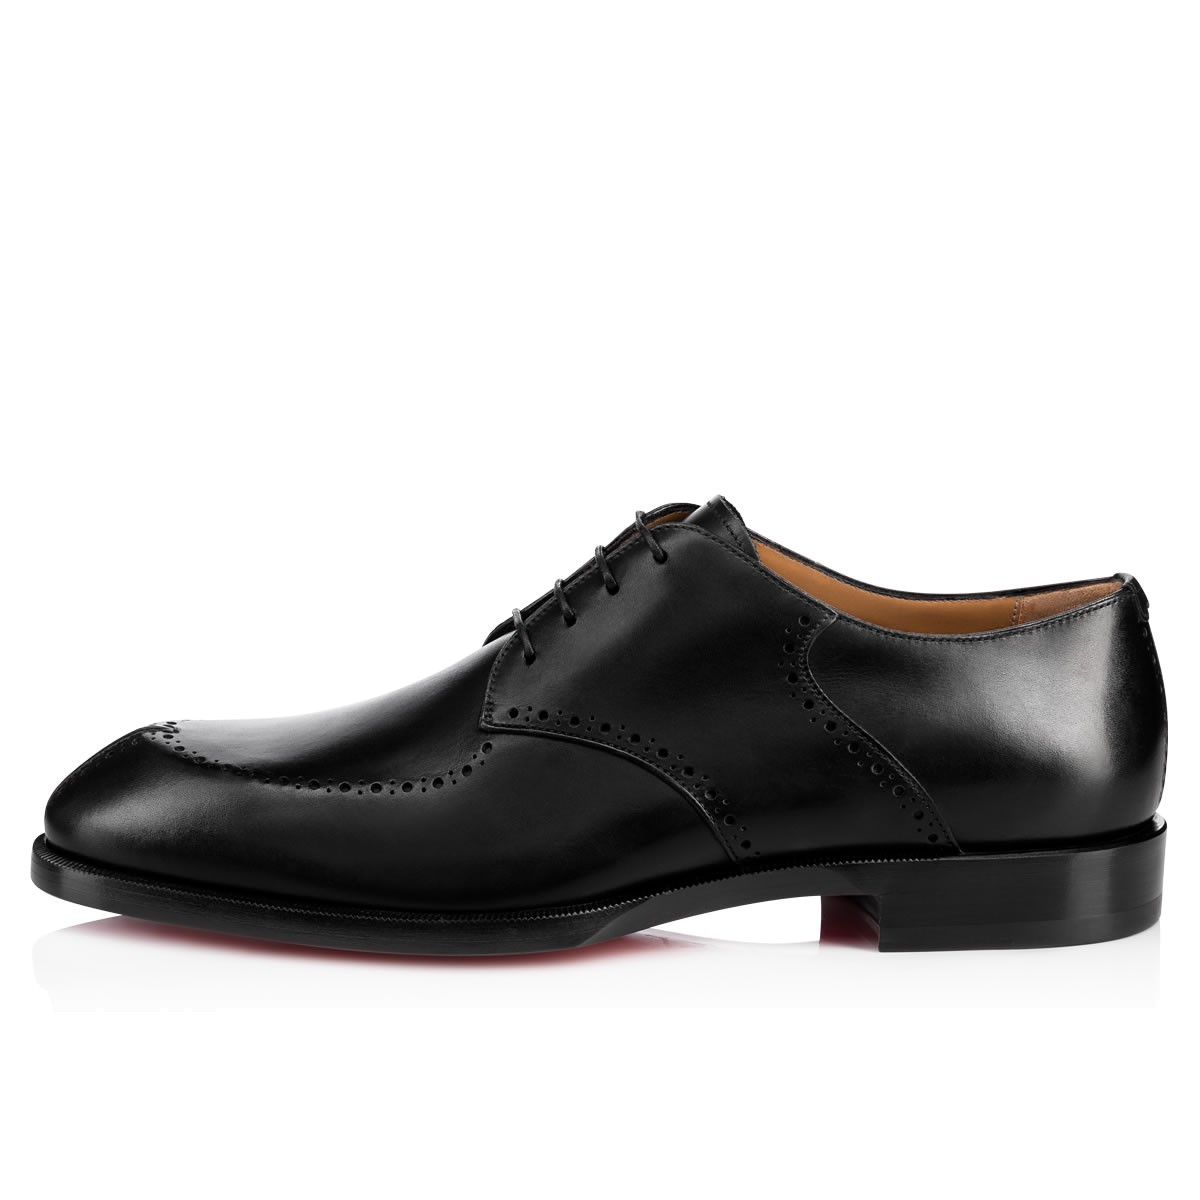 00cfdecd670 A Mon Homme Flat Black Leather - Men Shoes - Christian Louboutin